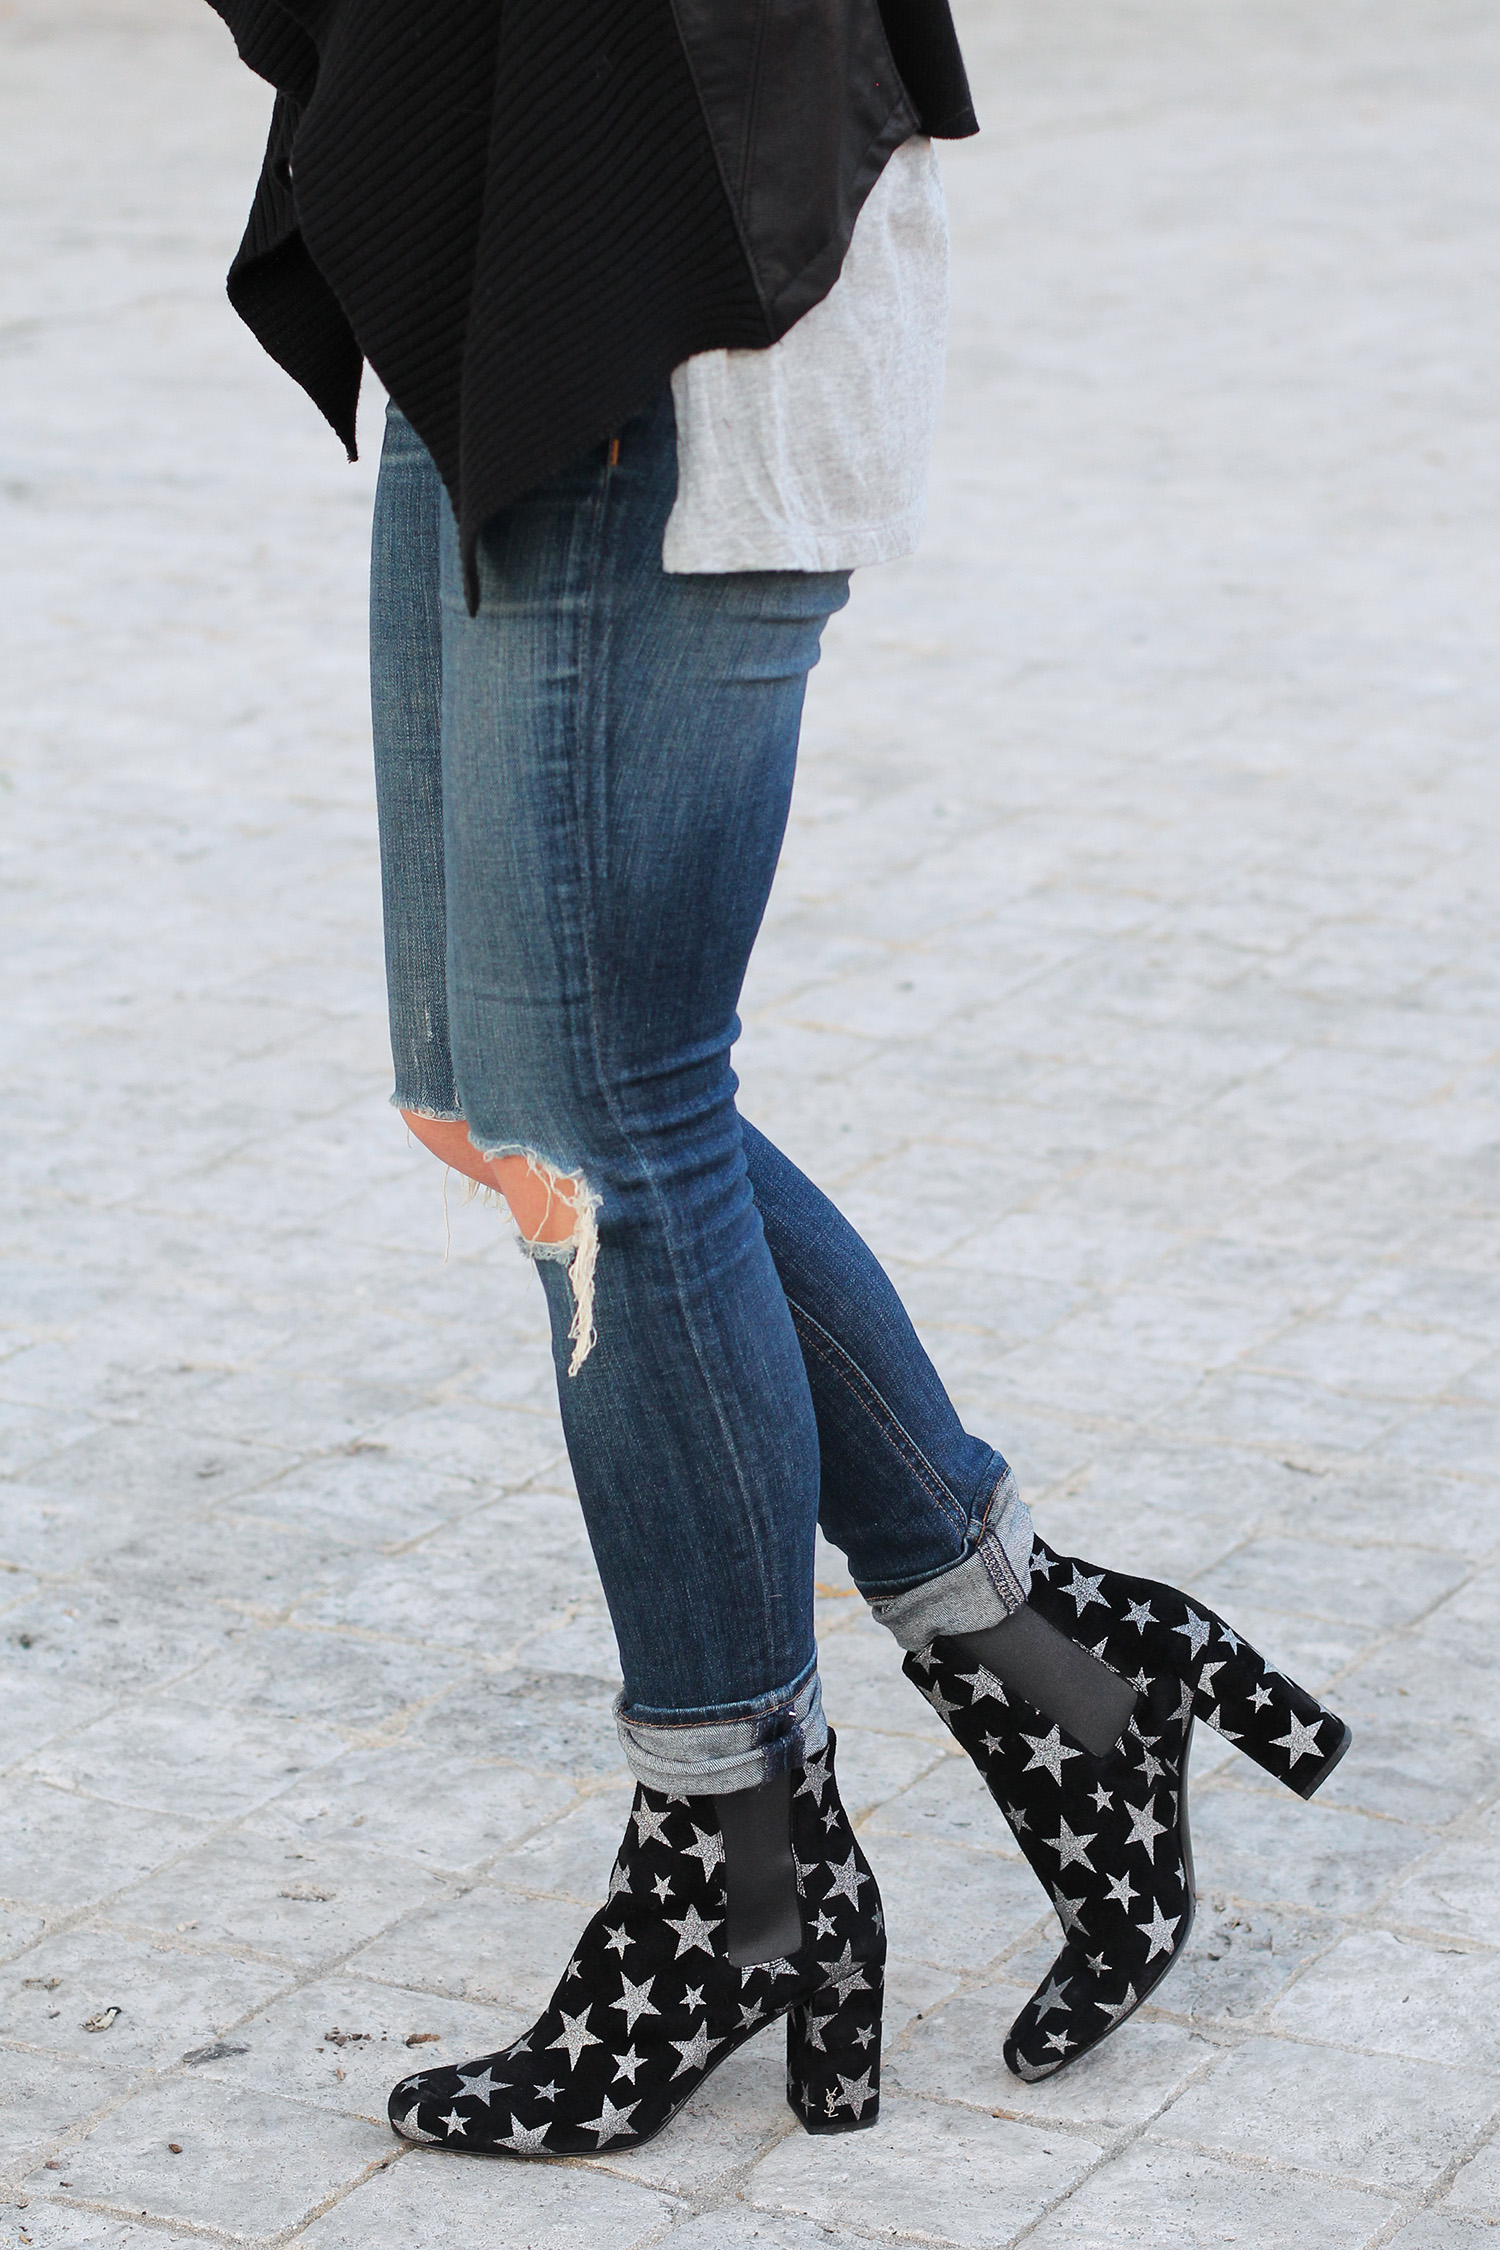 Velvet Star Boots, Rag and Bone Jeans